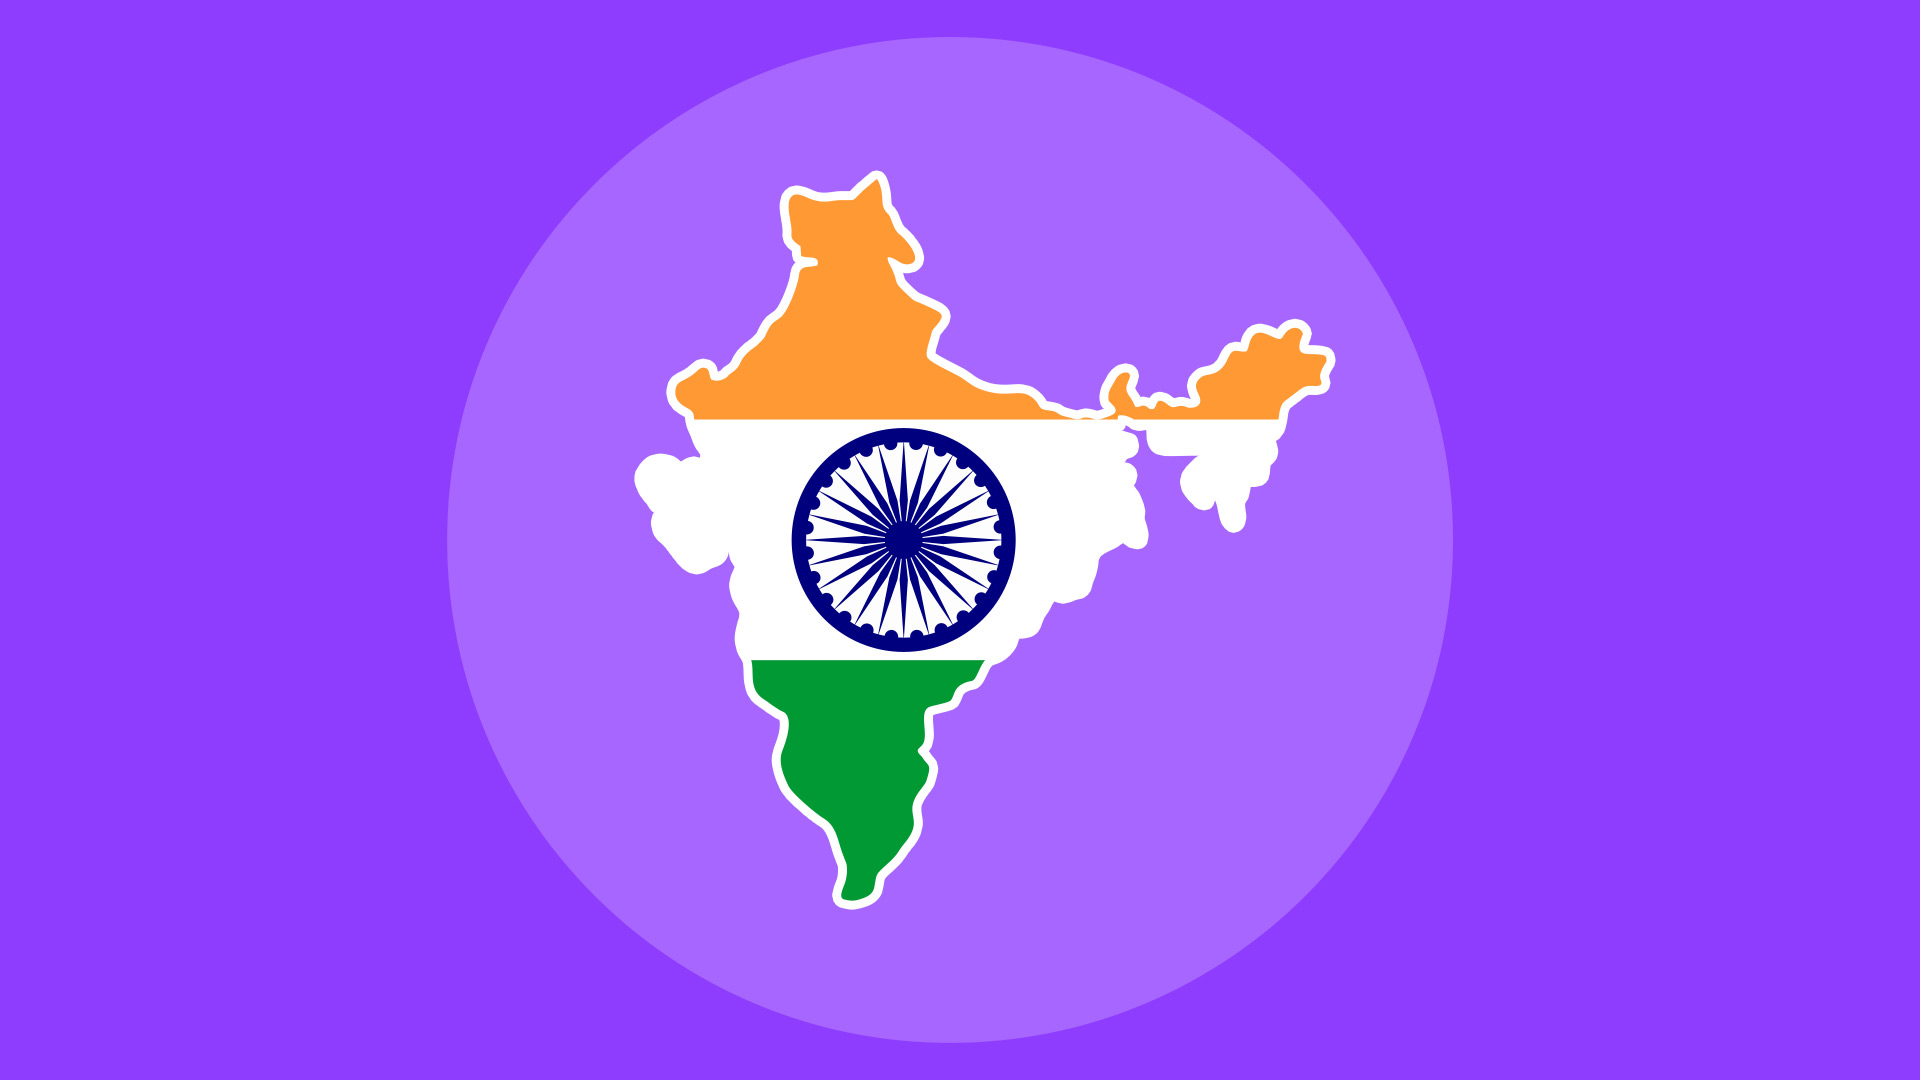 India to ban cryptocurrency investment completely: Report